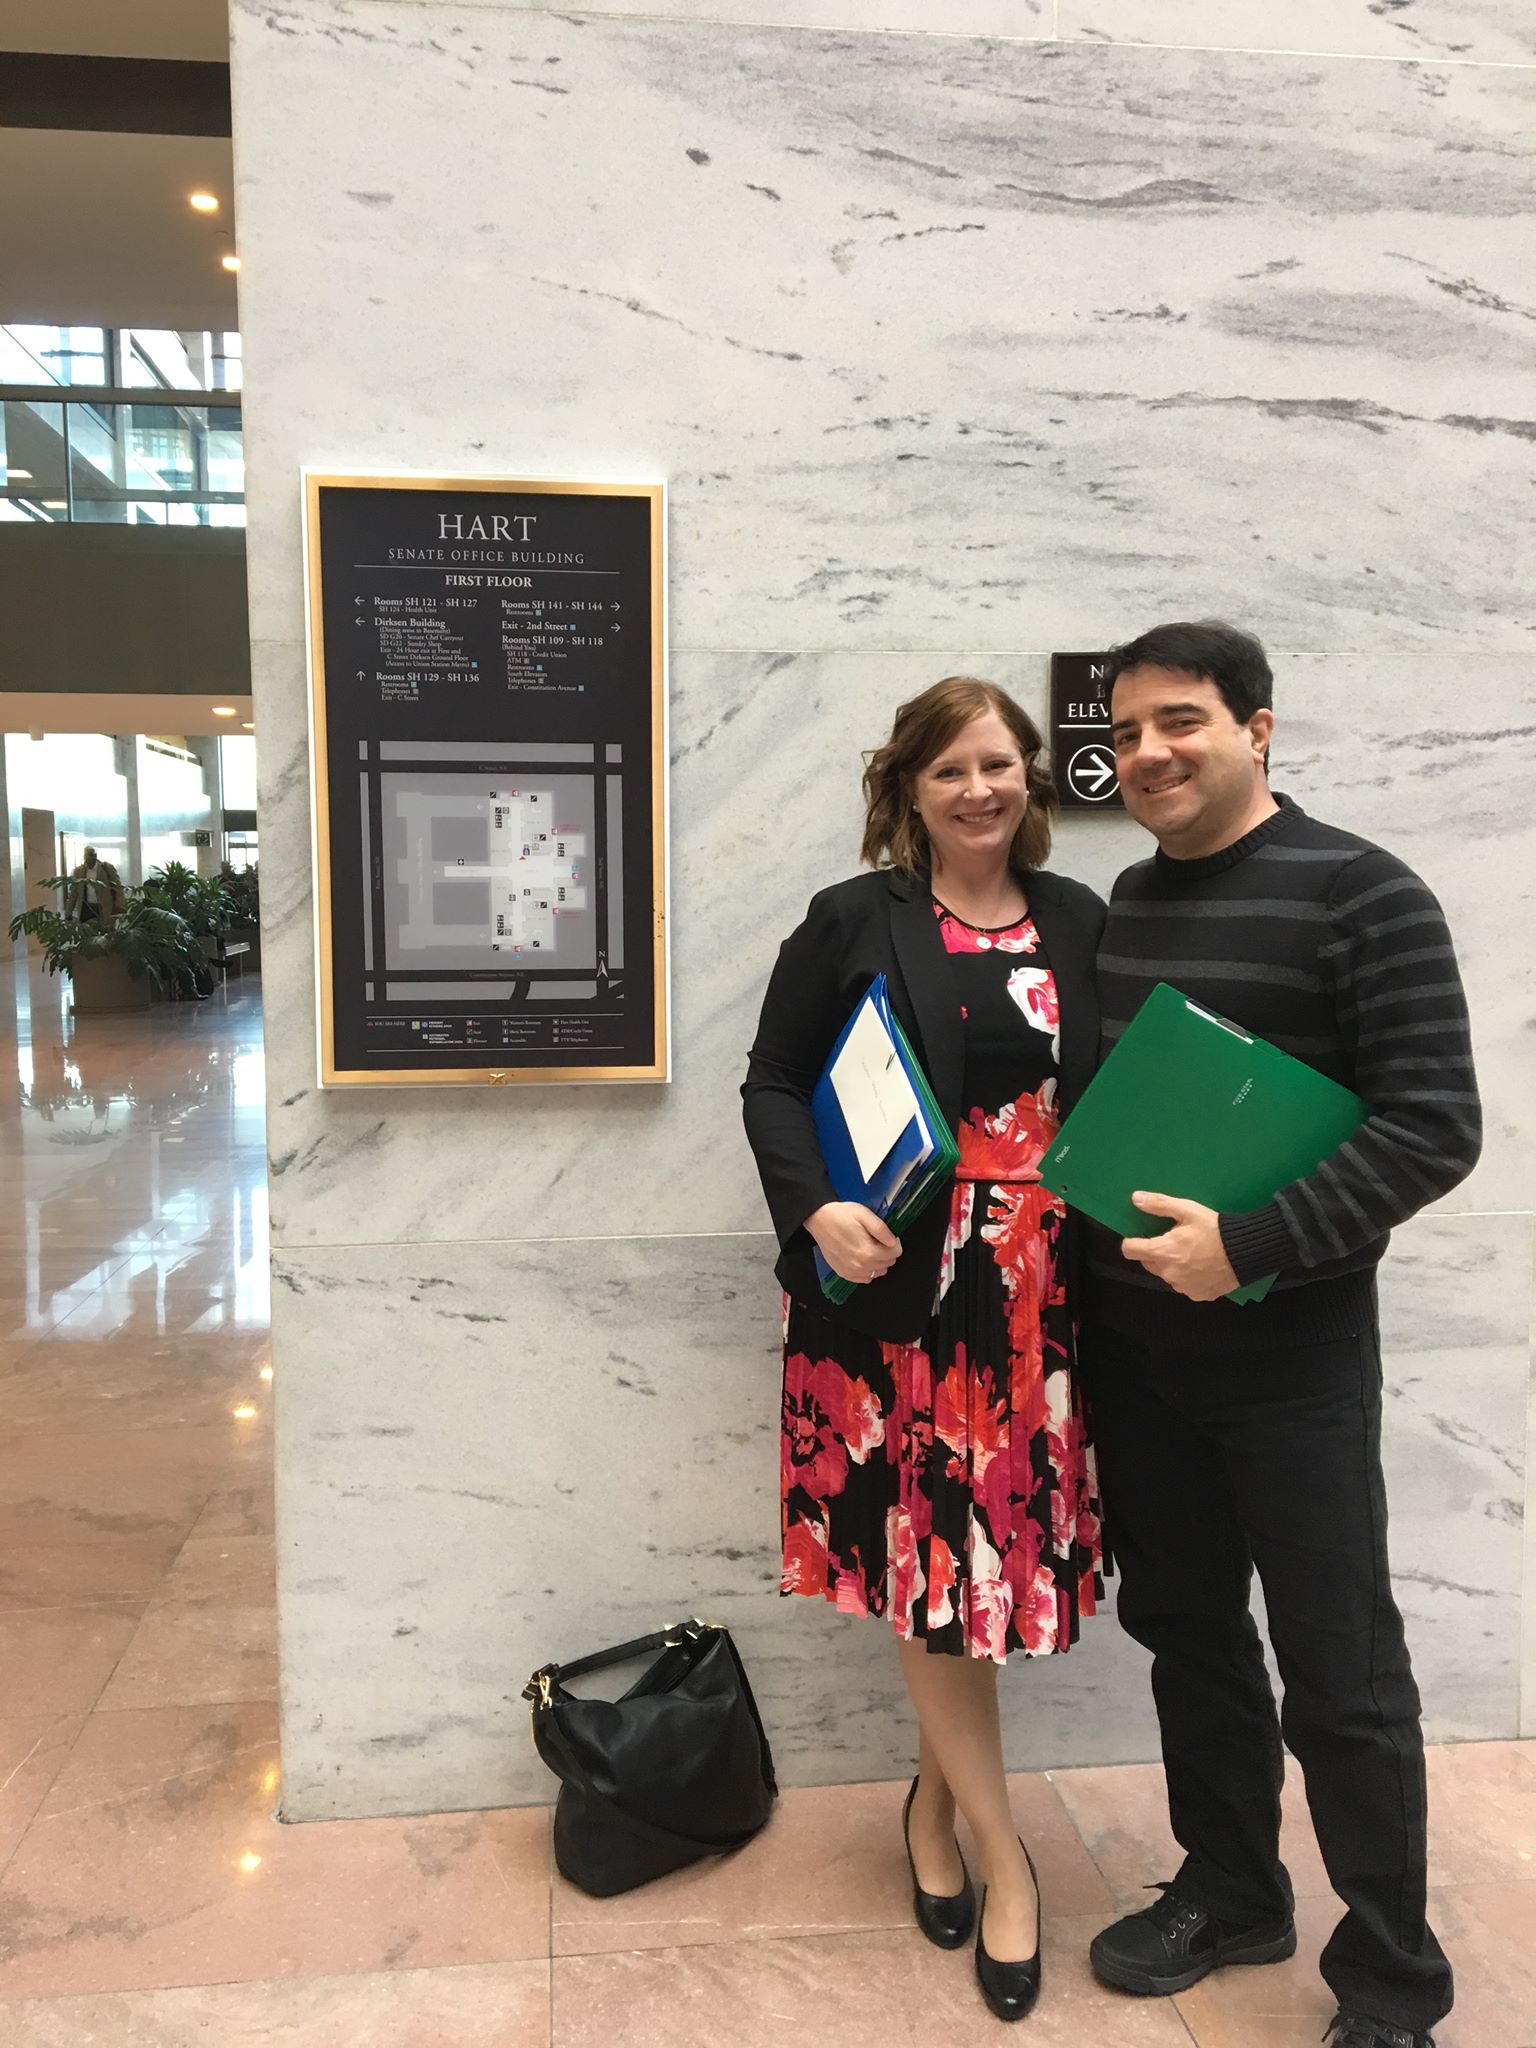 Jim and myself in the Hart Senate Office Building. Photo by Robin Utz